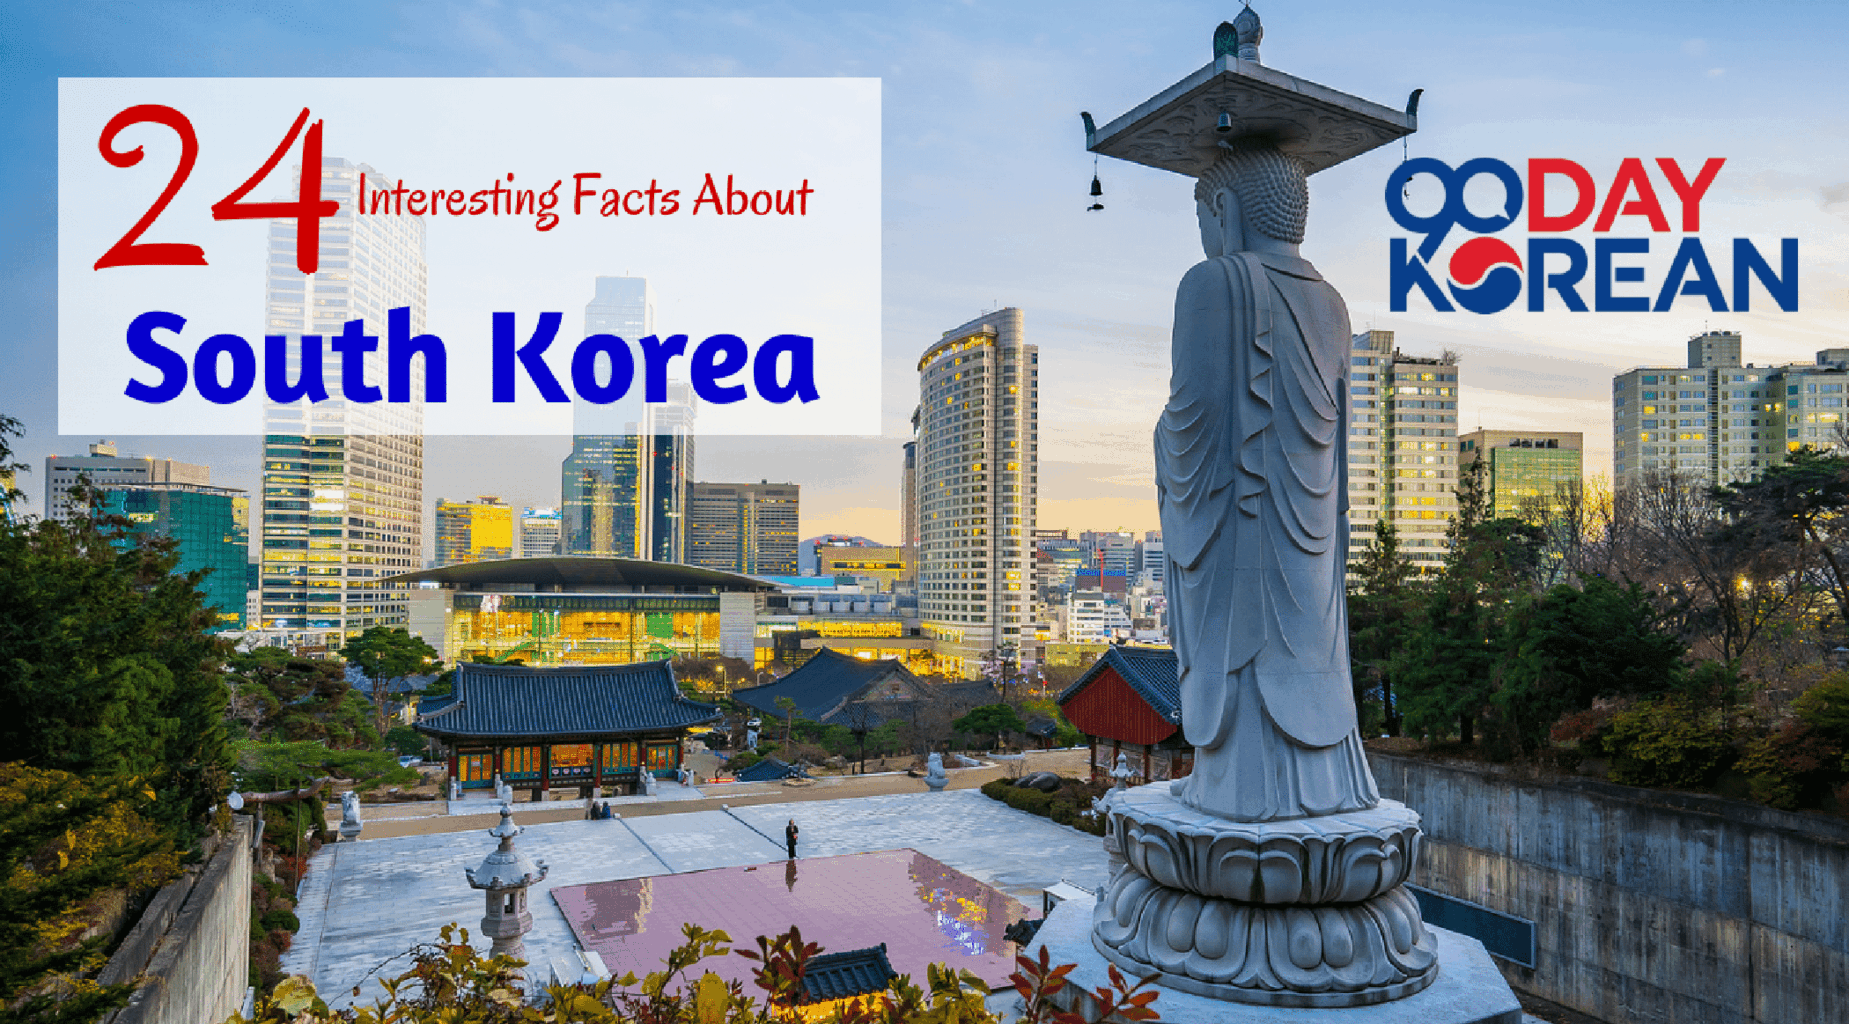 24 Interesting Facts About South Korea